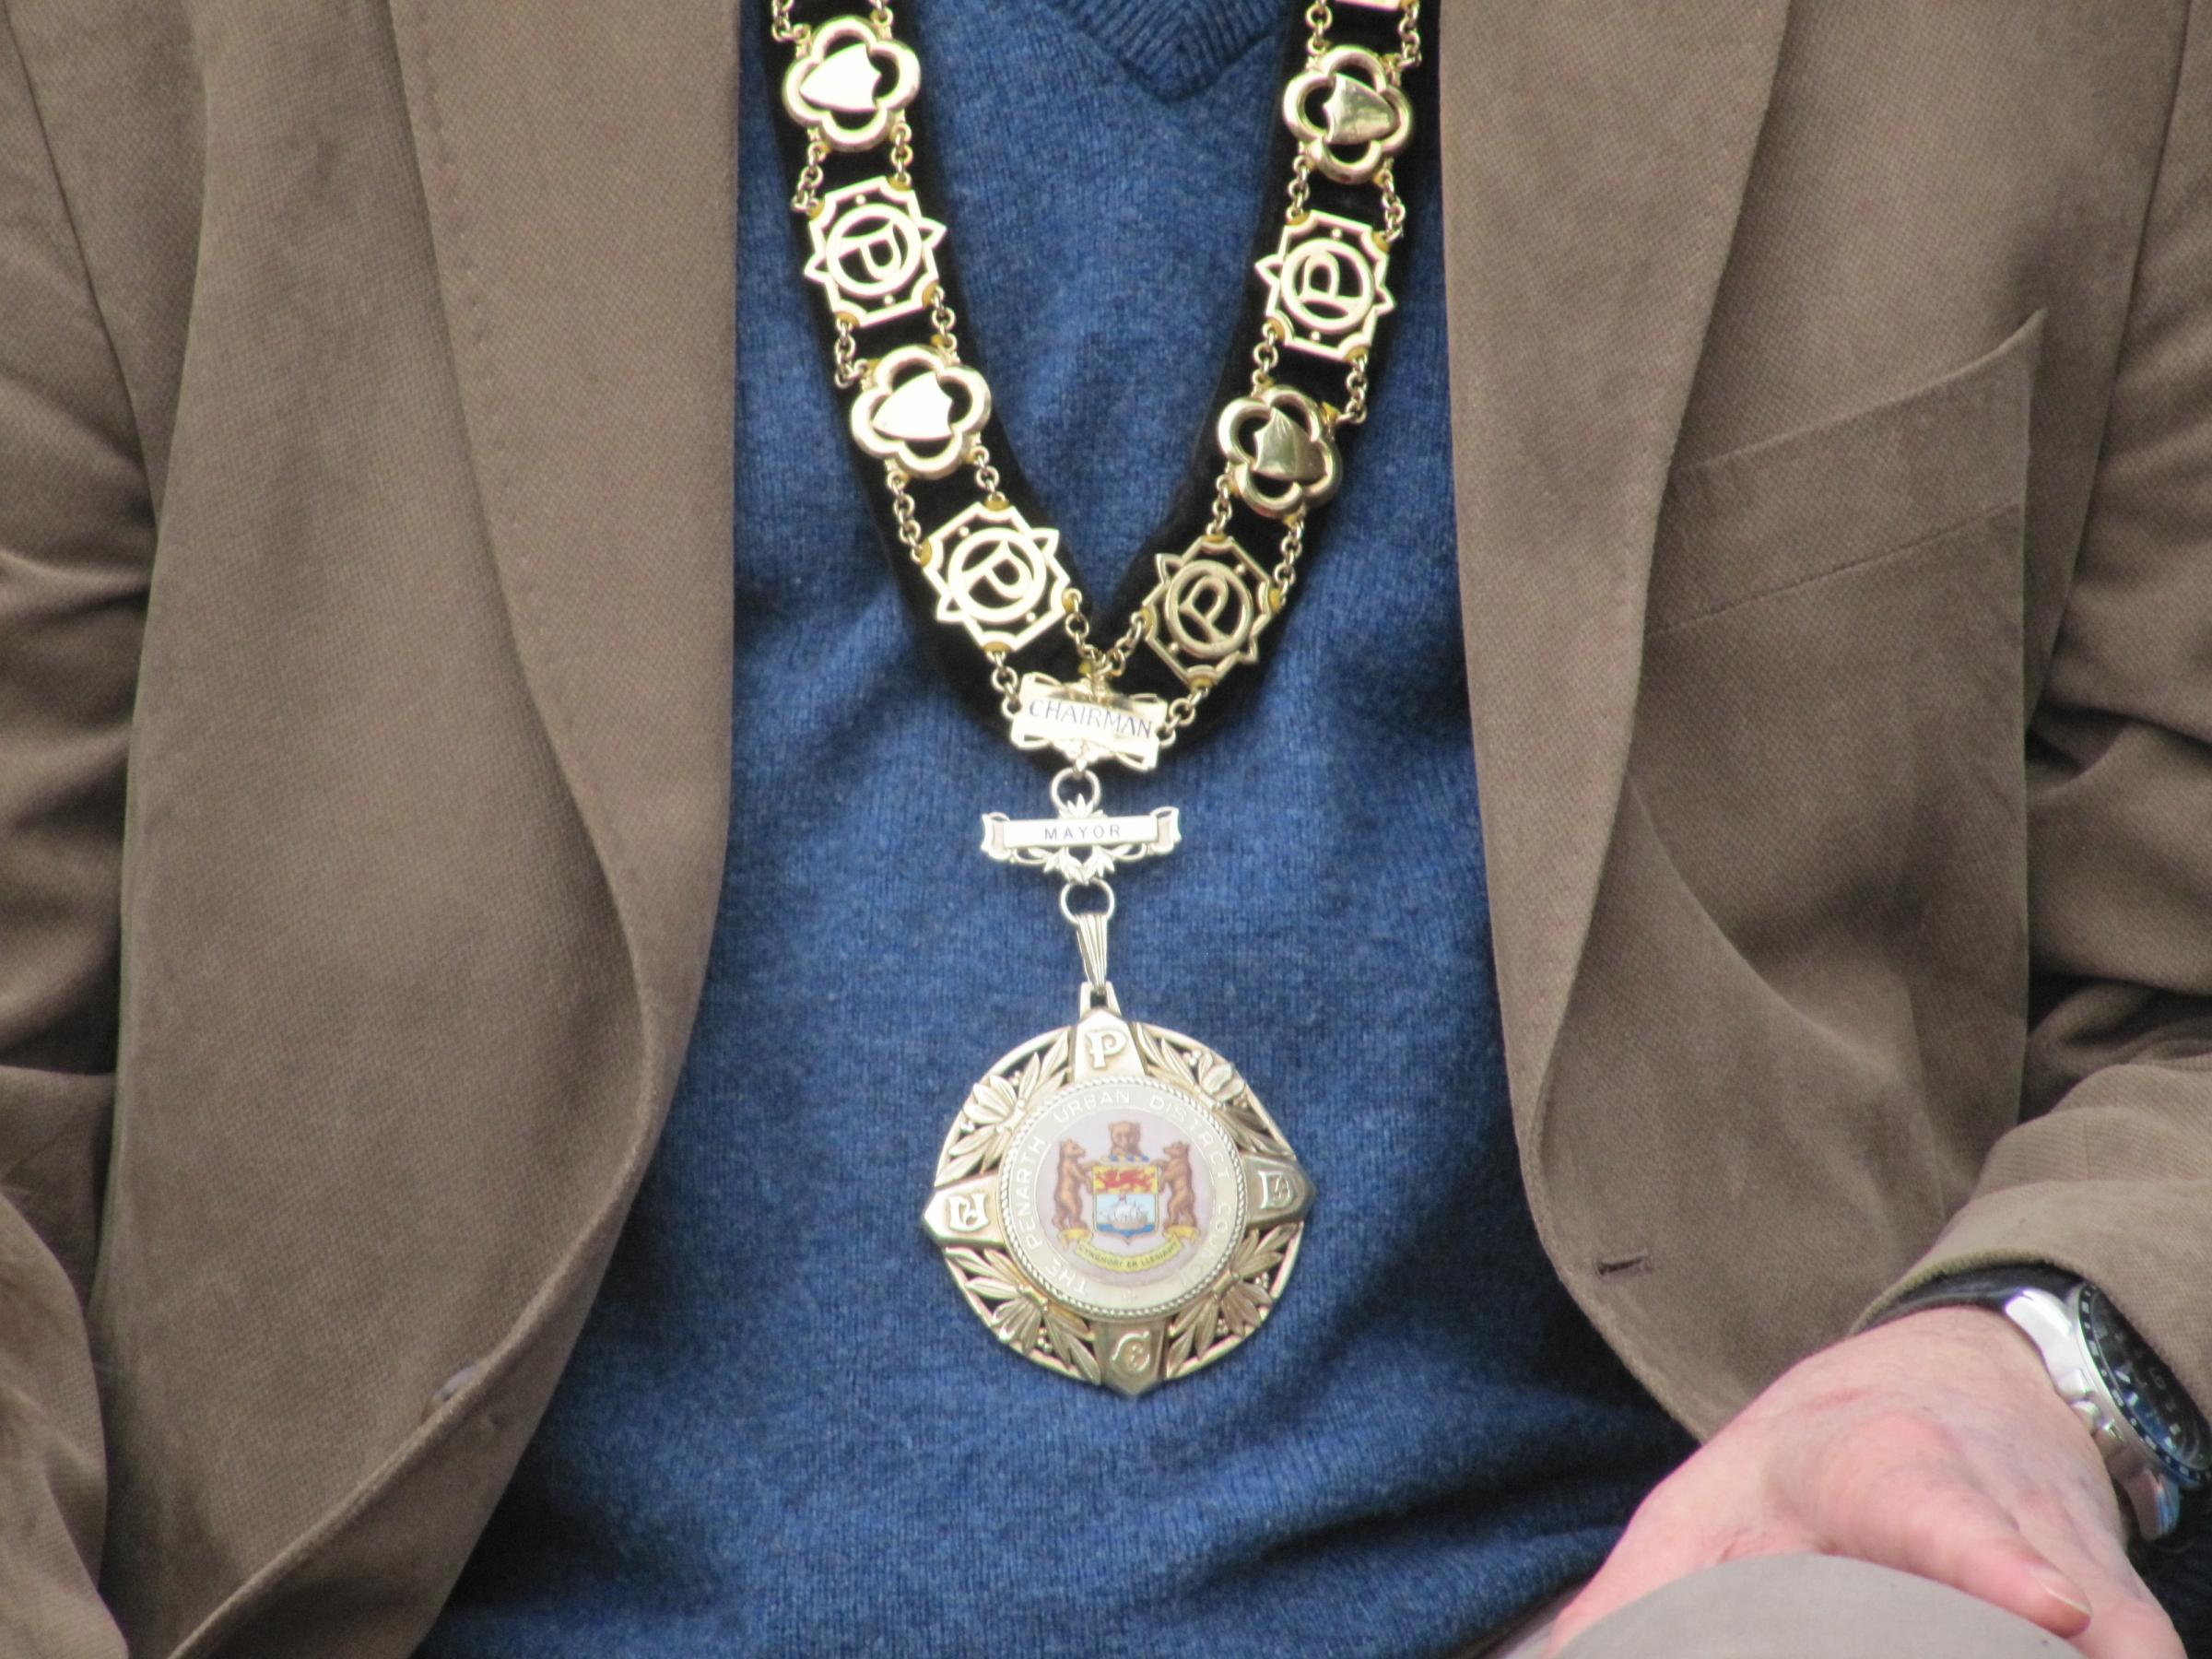 TOWN MAYOR: Councillor Martin Turner will be the Penarth Town Mayor for 2014/2015(4697284)